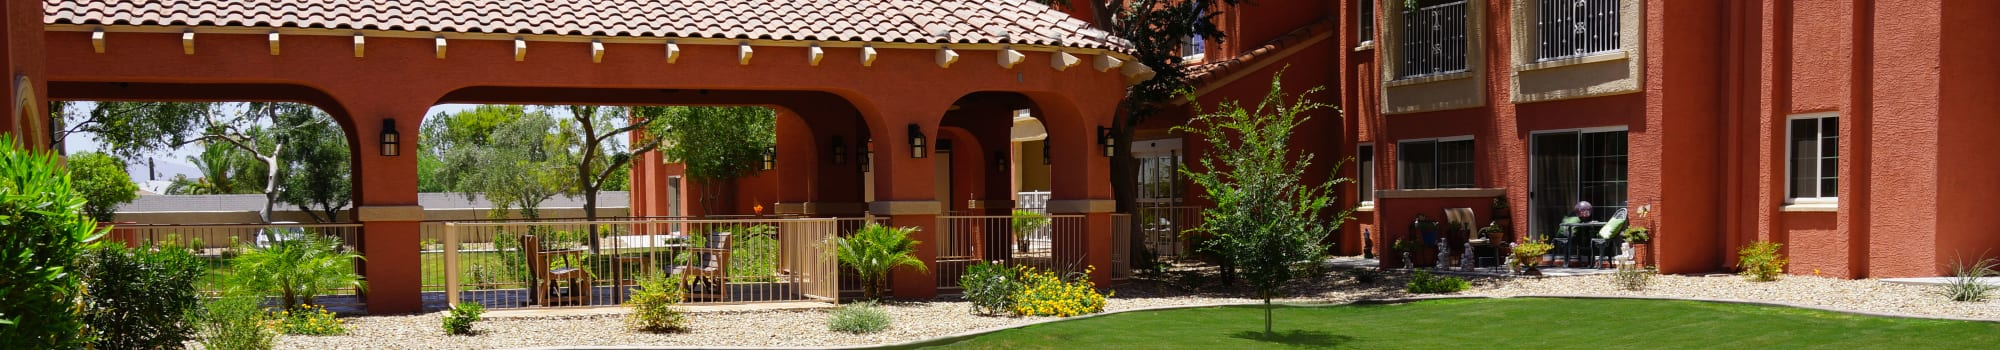 Services at Casa Del Rio Senior Living in Peoria, Arizona